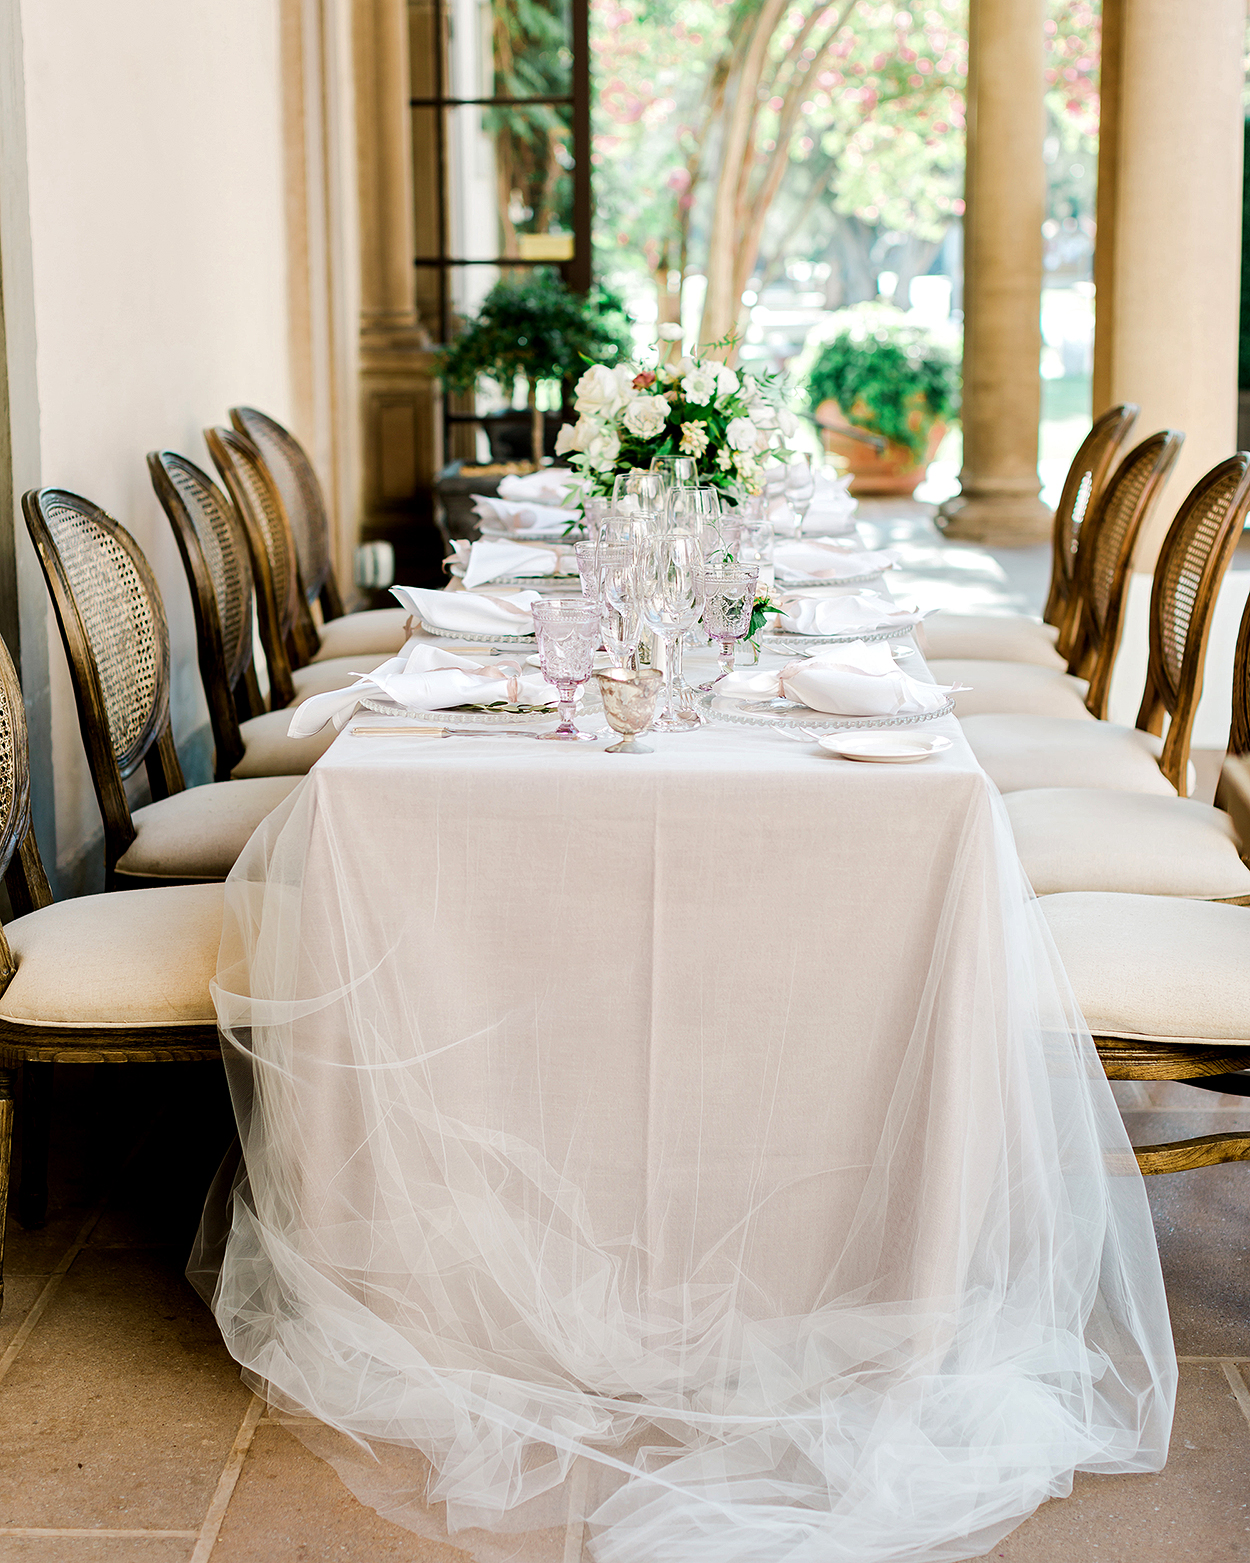 white tulle overlay on reception table